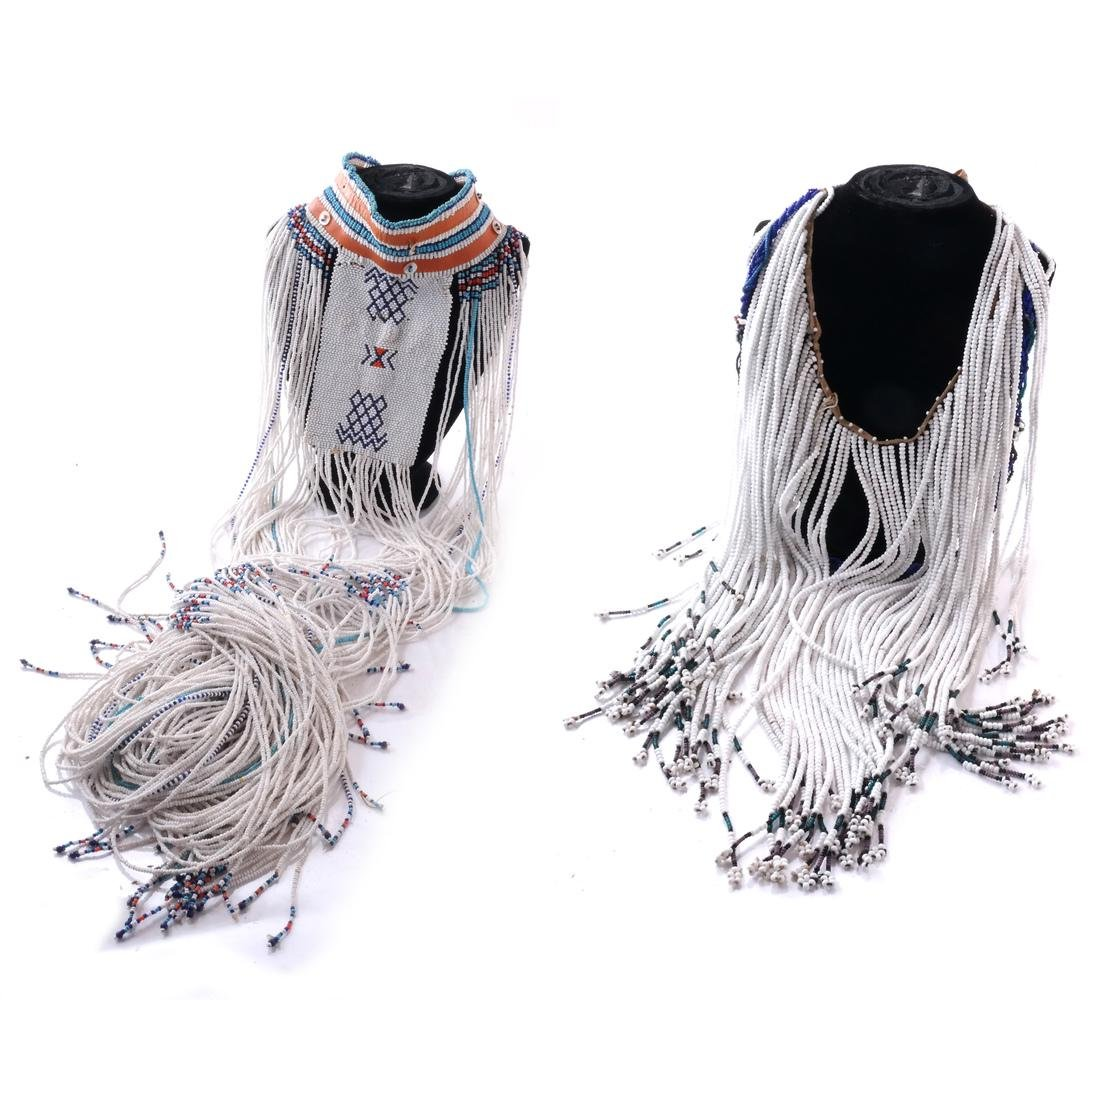 Indo-Asian, Tribal Clothing & Accessories - 5